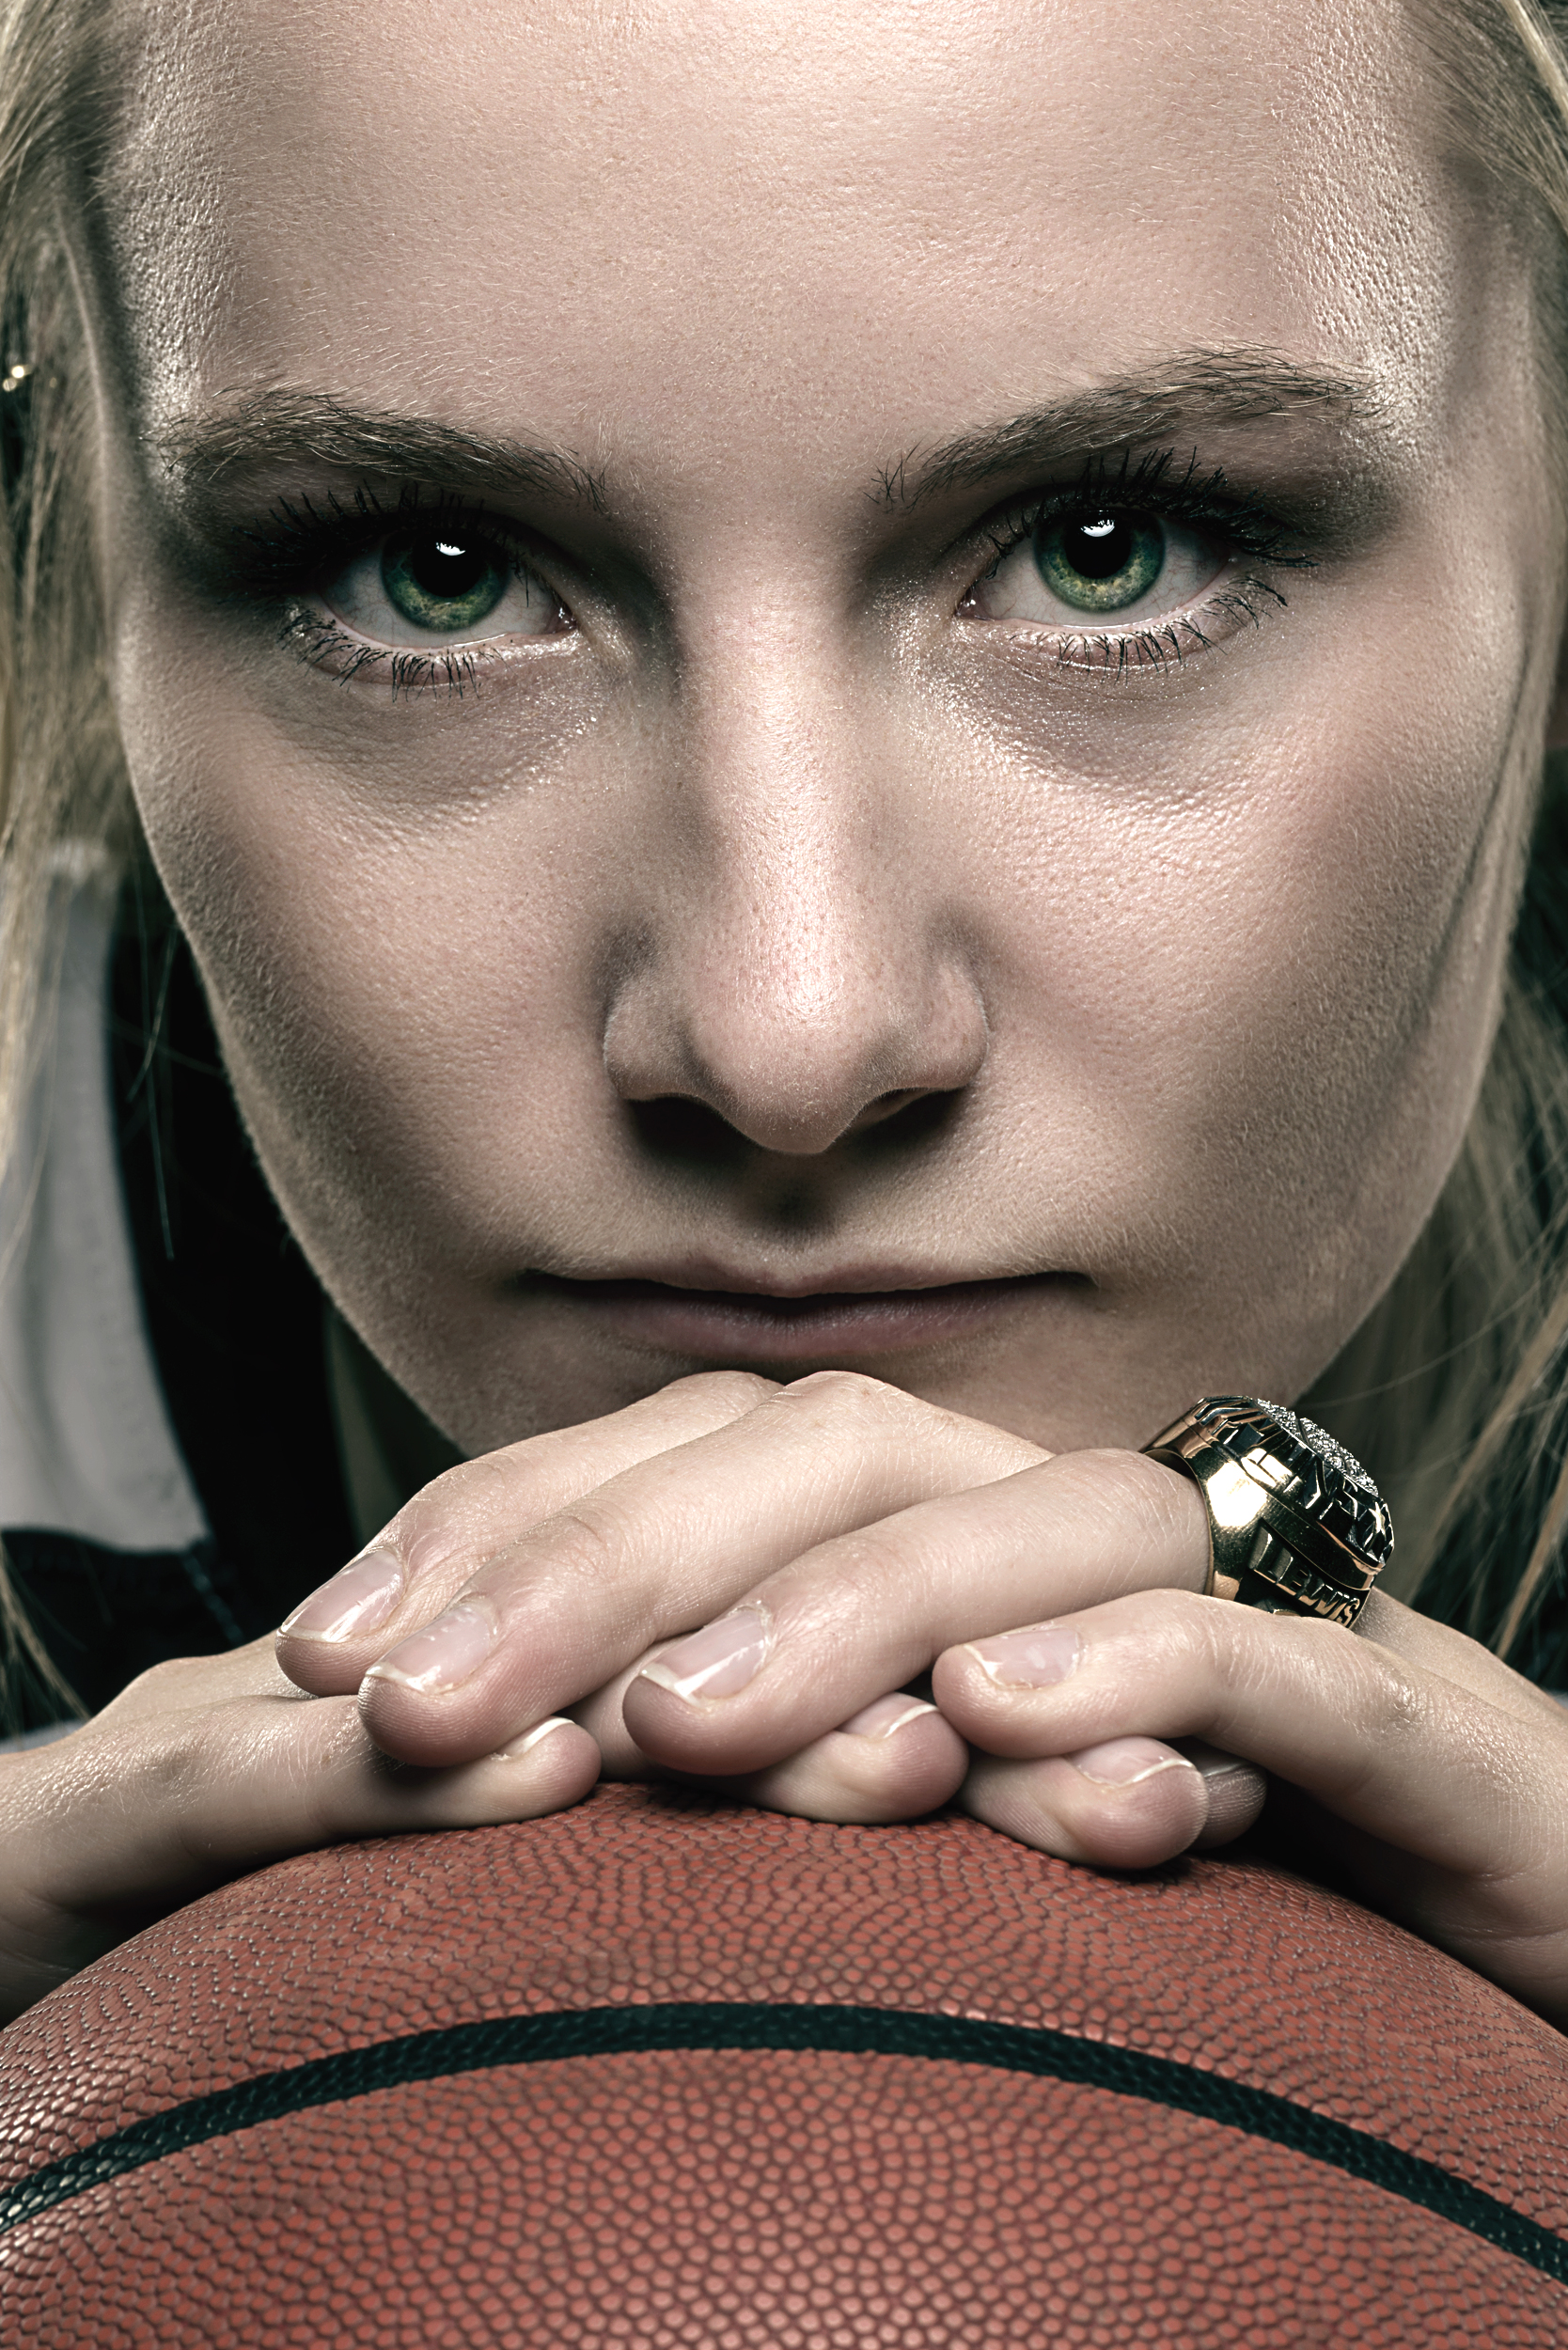 Female basketball player portrait with championship ring